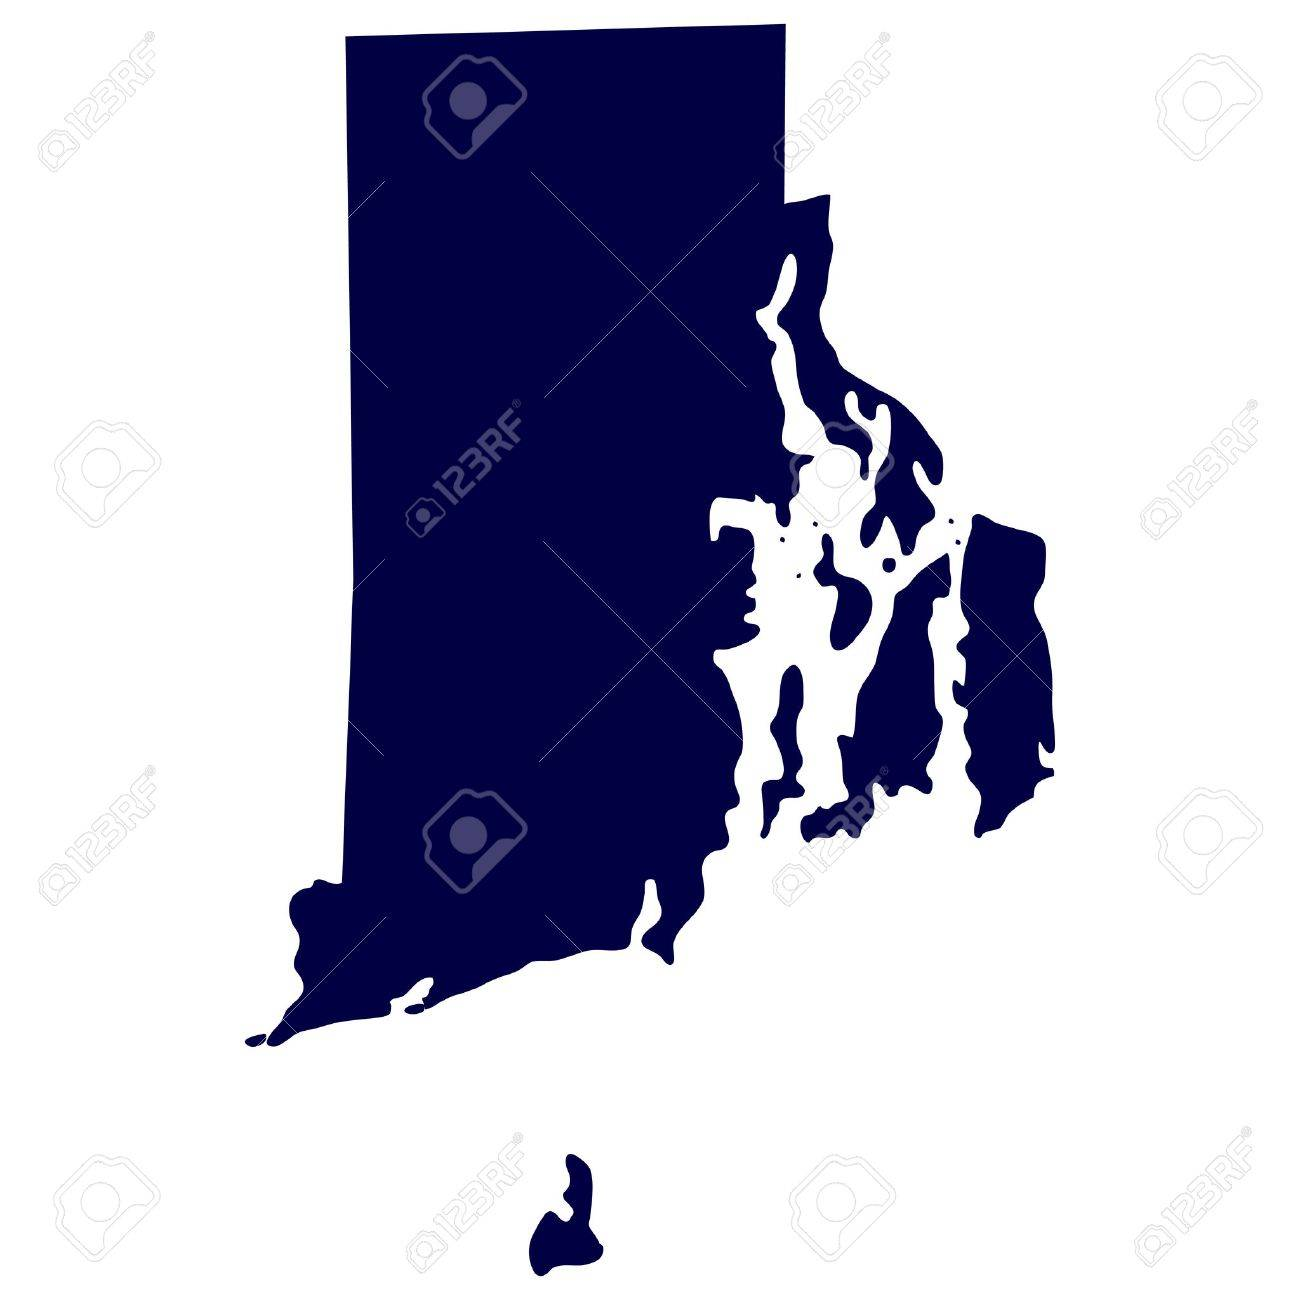 Map Of The U S State Of Rhode Island Royalty Free Cliparts - Rhode island on the us map